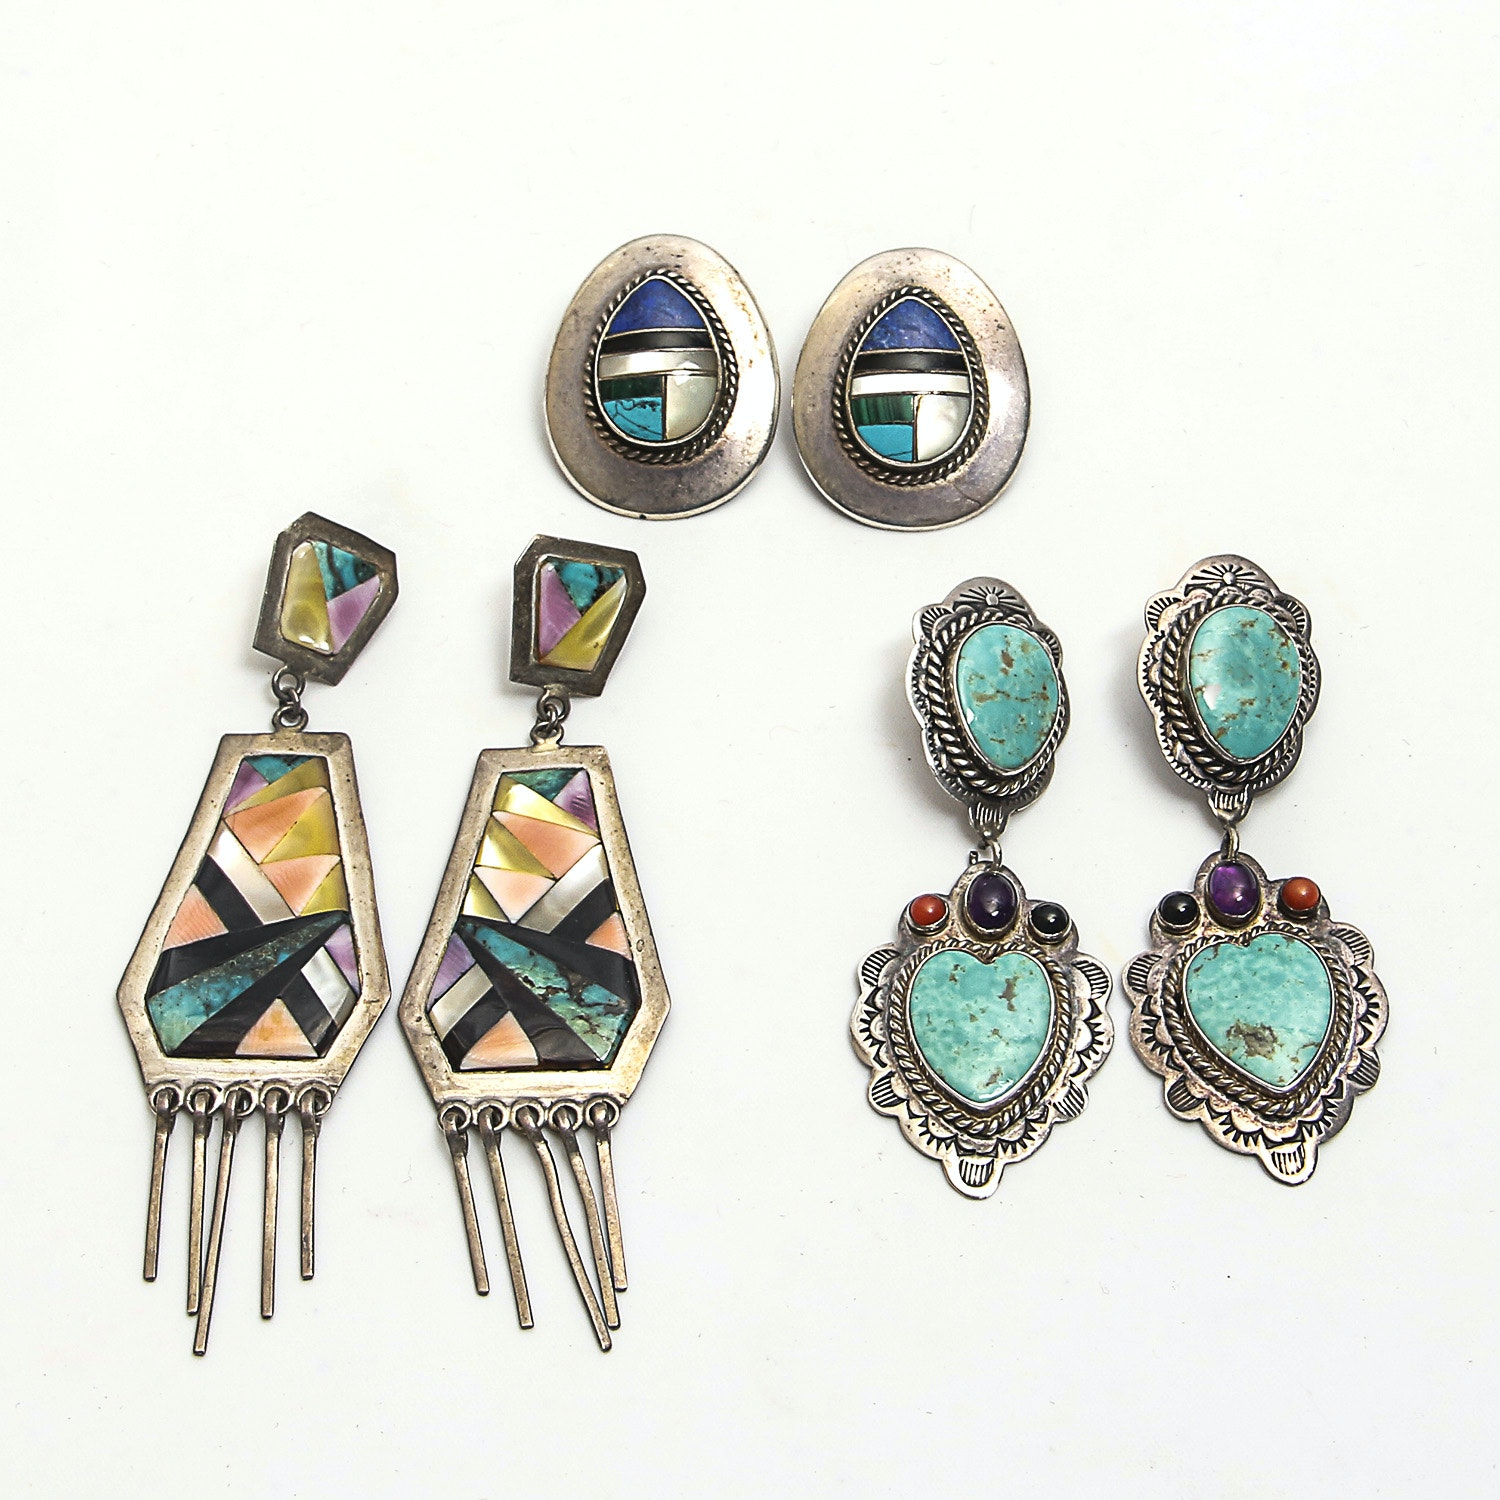 Three Pairs of Sterling Earrings with Amethyst, Shell, Onyx, Turquoise, Howlite, Malachite and Lapis Lazuli Inlays